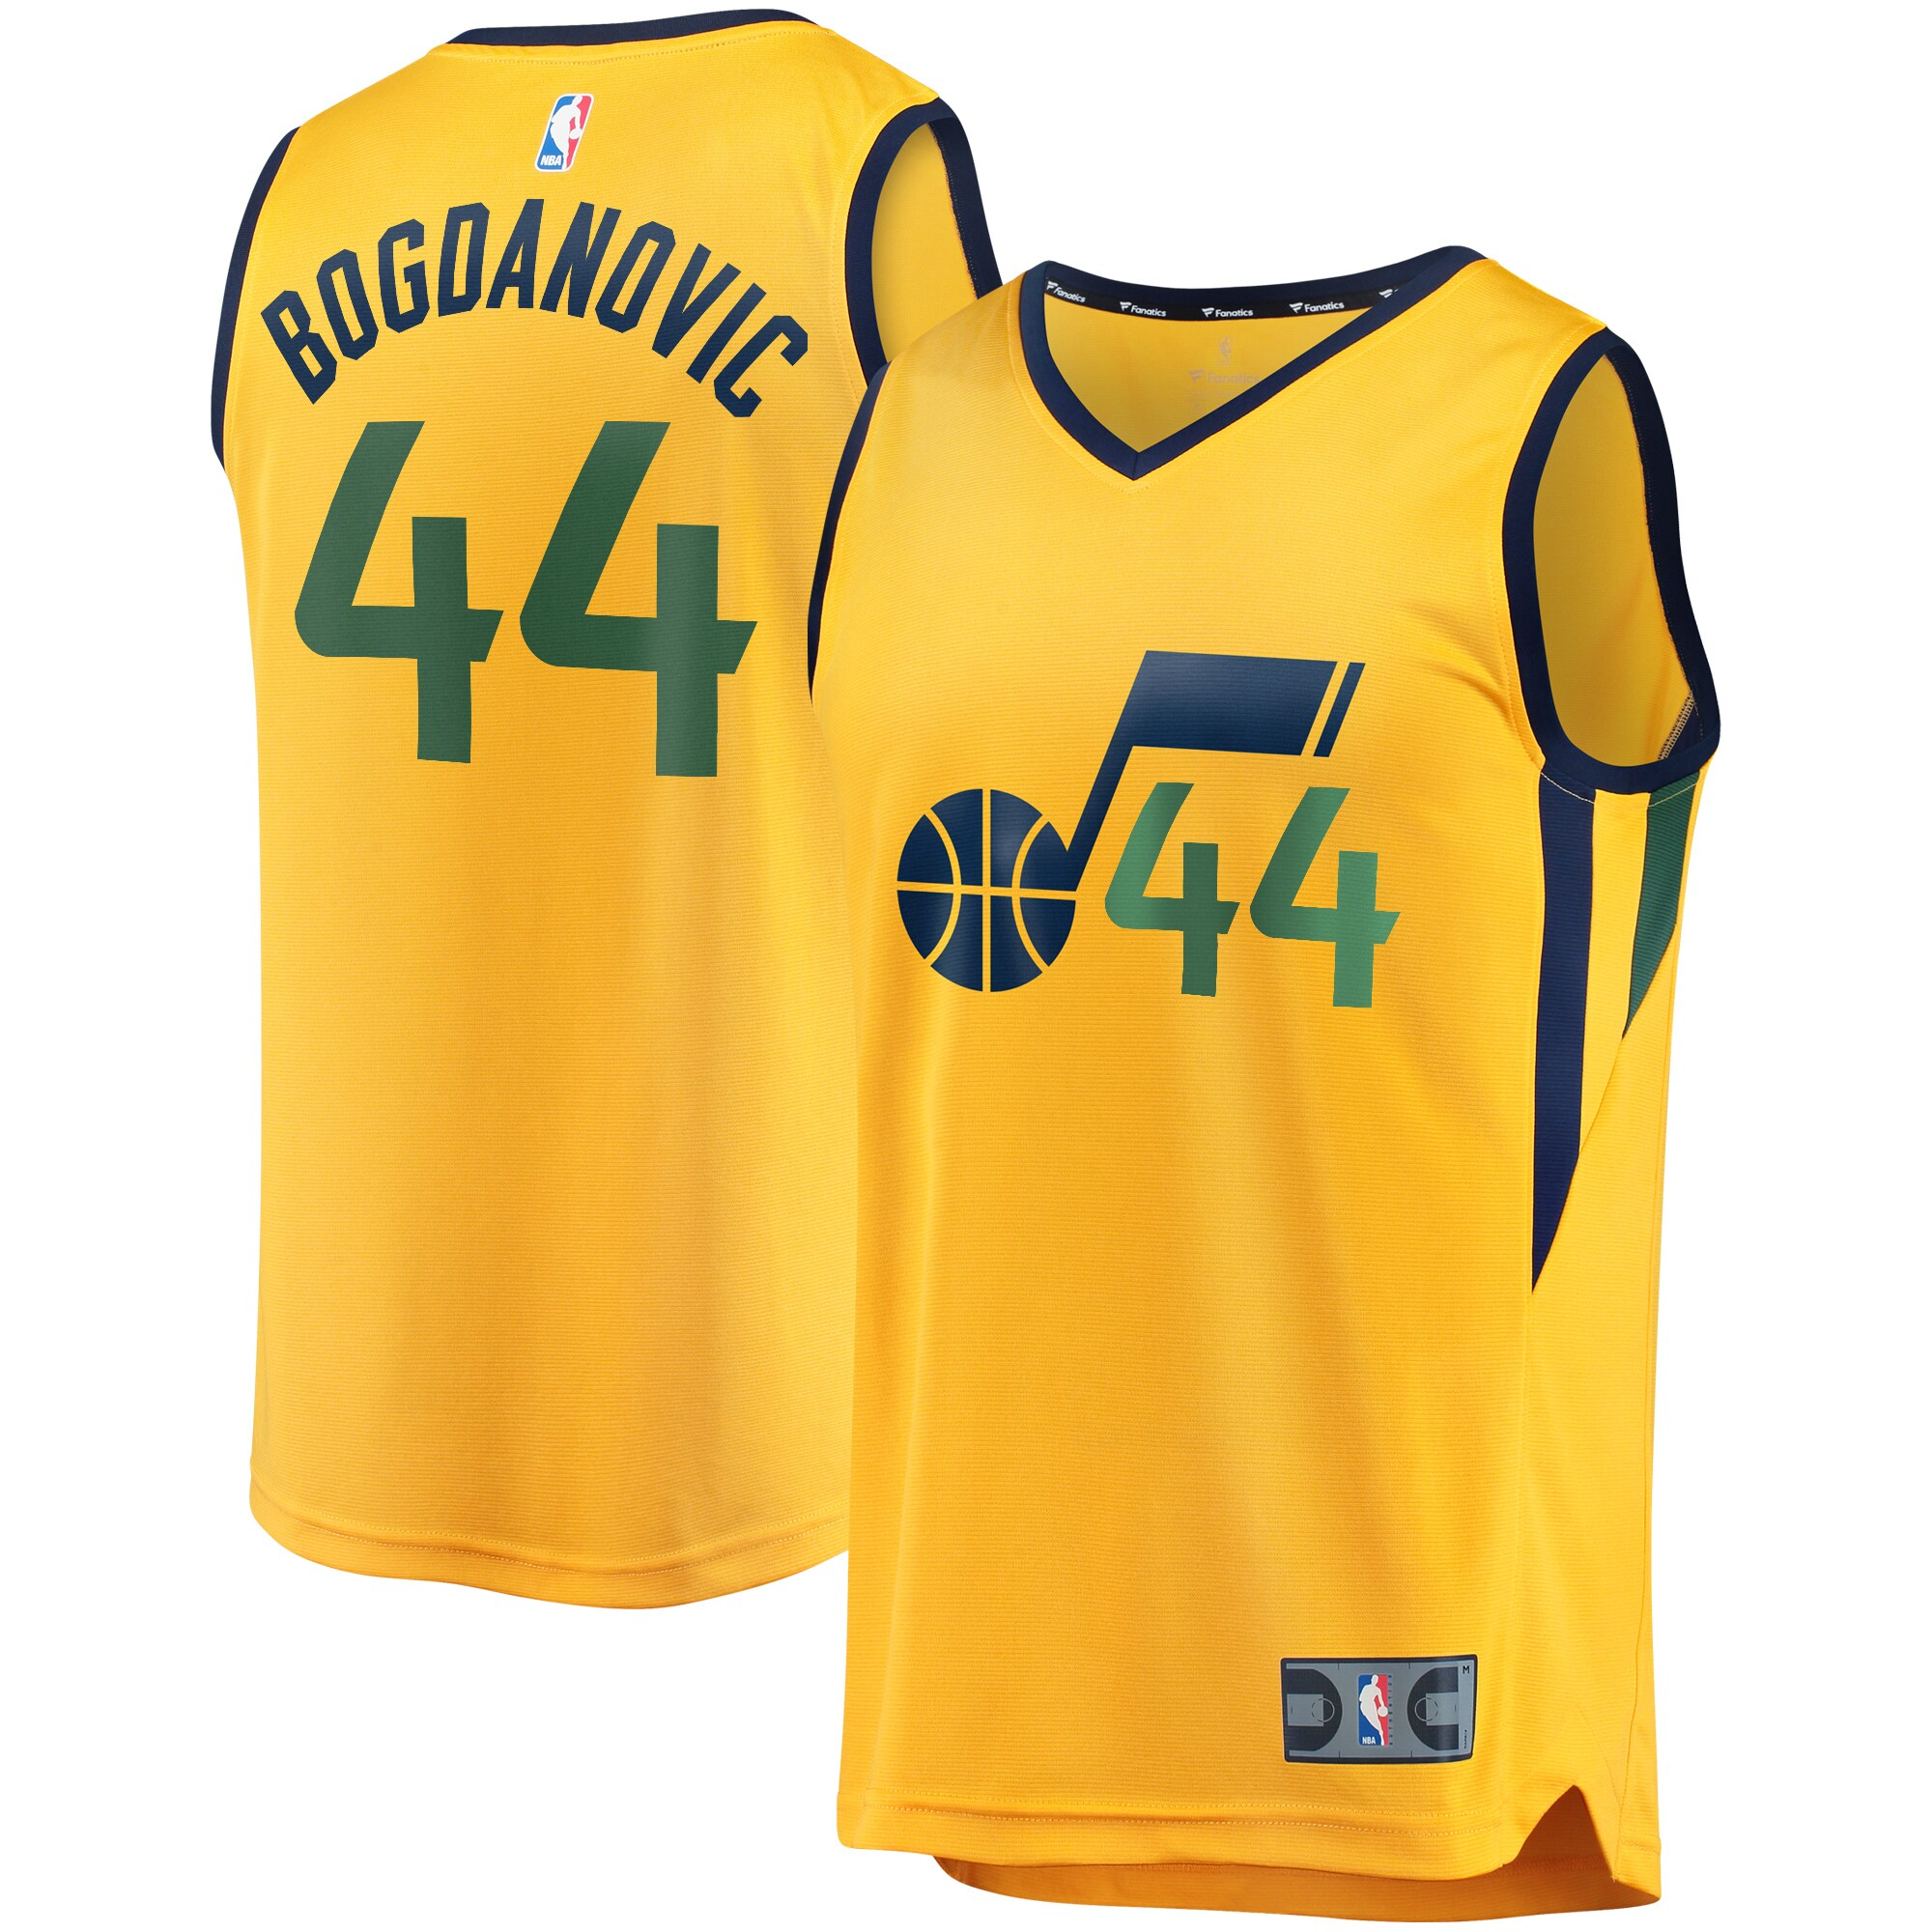 Bojan Bogdanovic Utah Jazz Fanatics Branded Youth Fast Break Replica Jersey Gold - Statement Edition